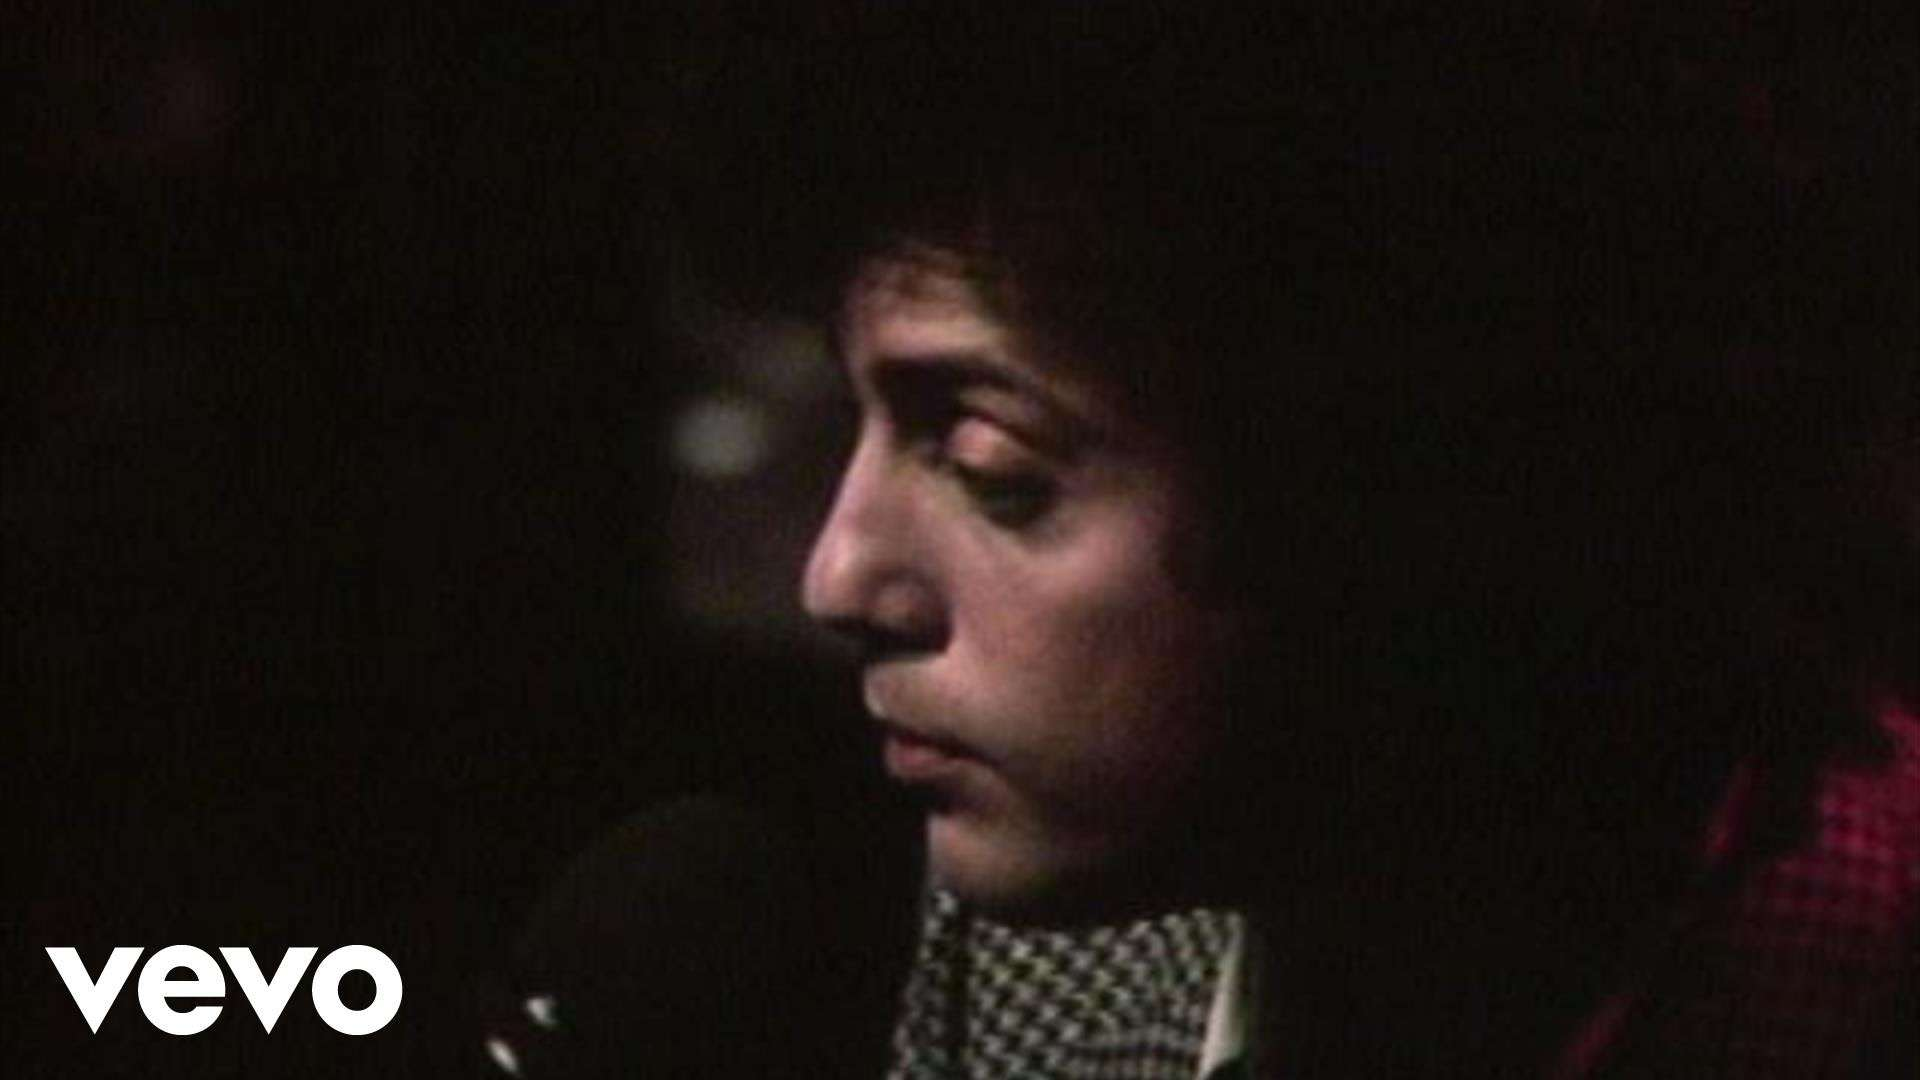 Billy Joel - Honesty (Official Video) - YouTube